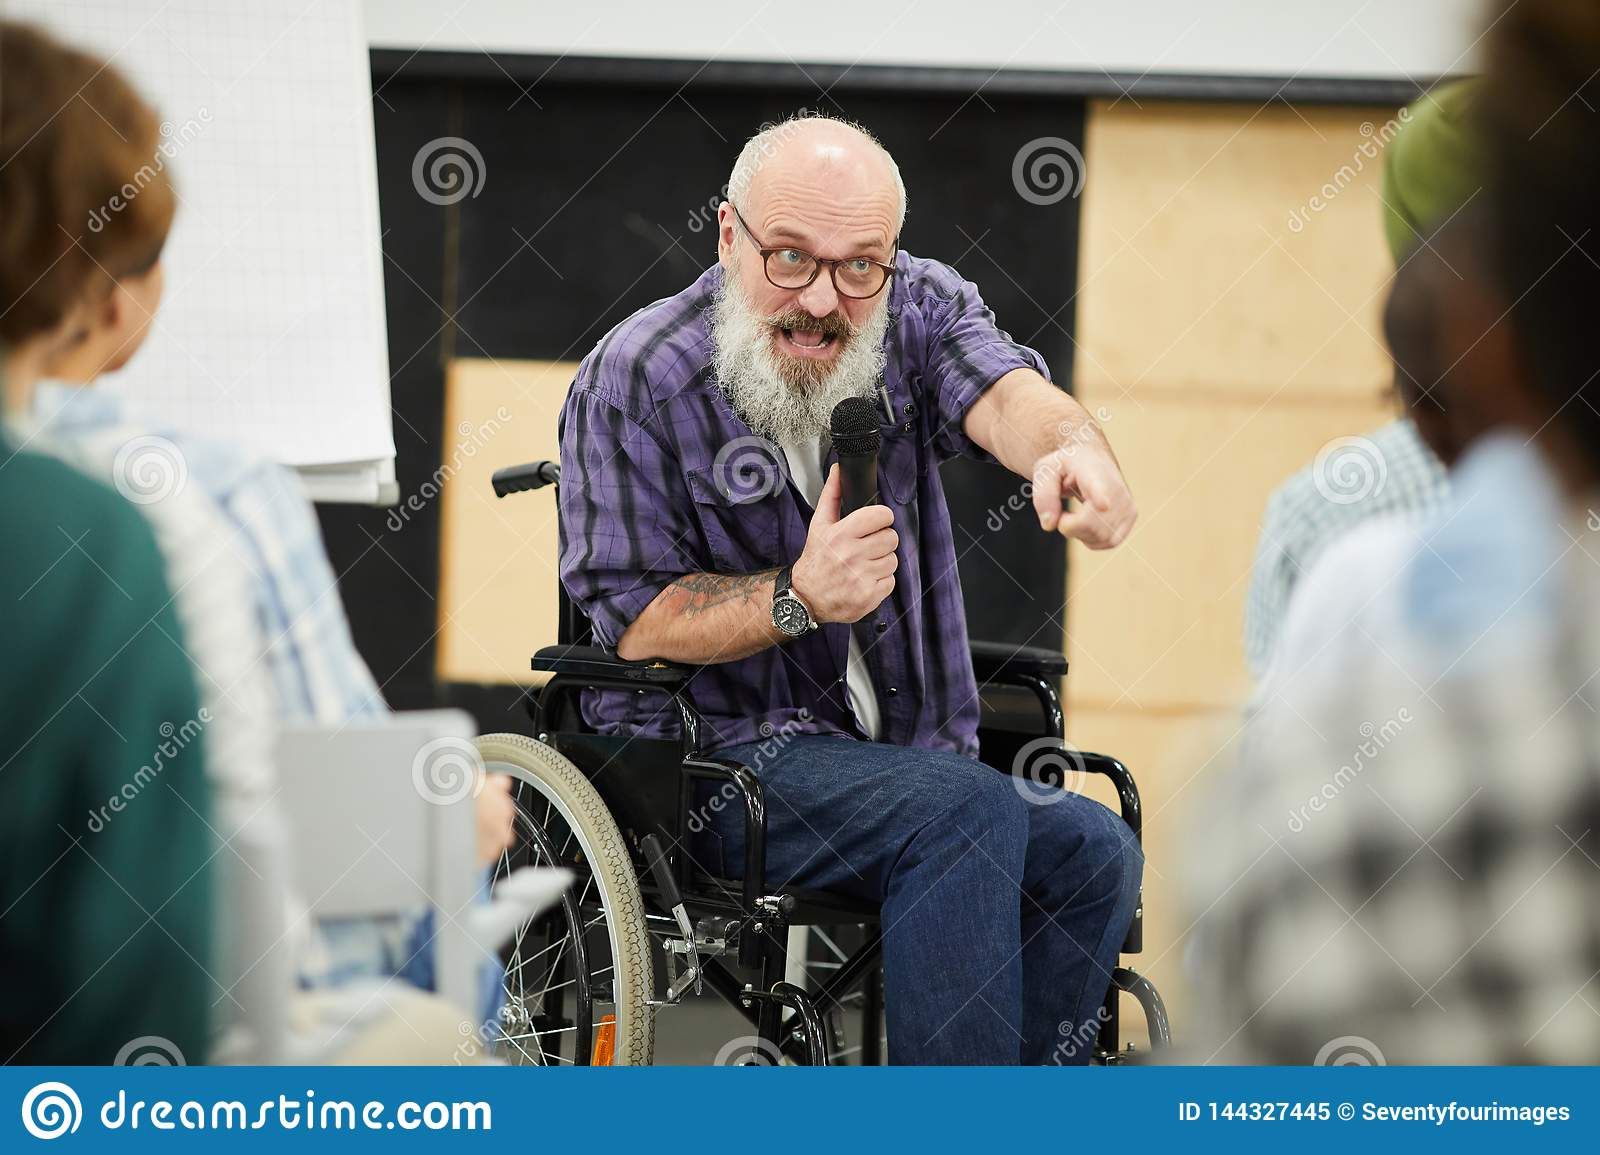 Motivational disabled speaker at conference